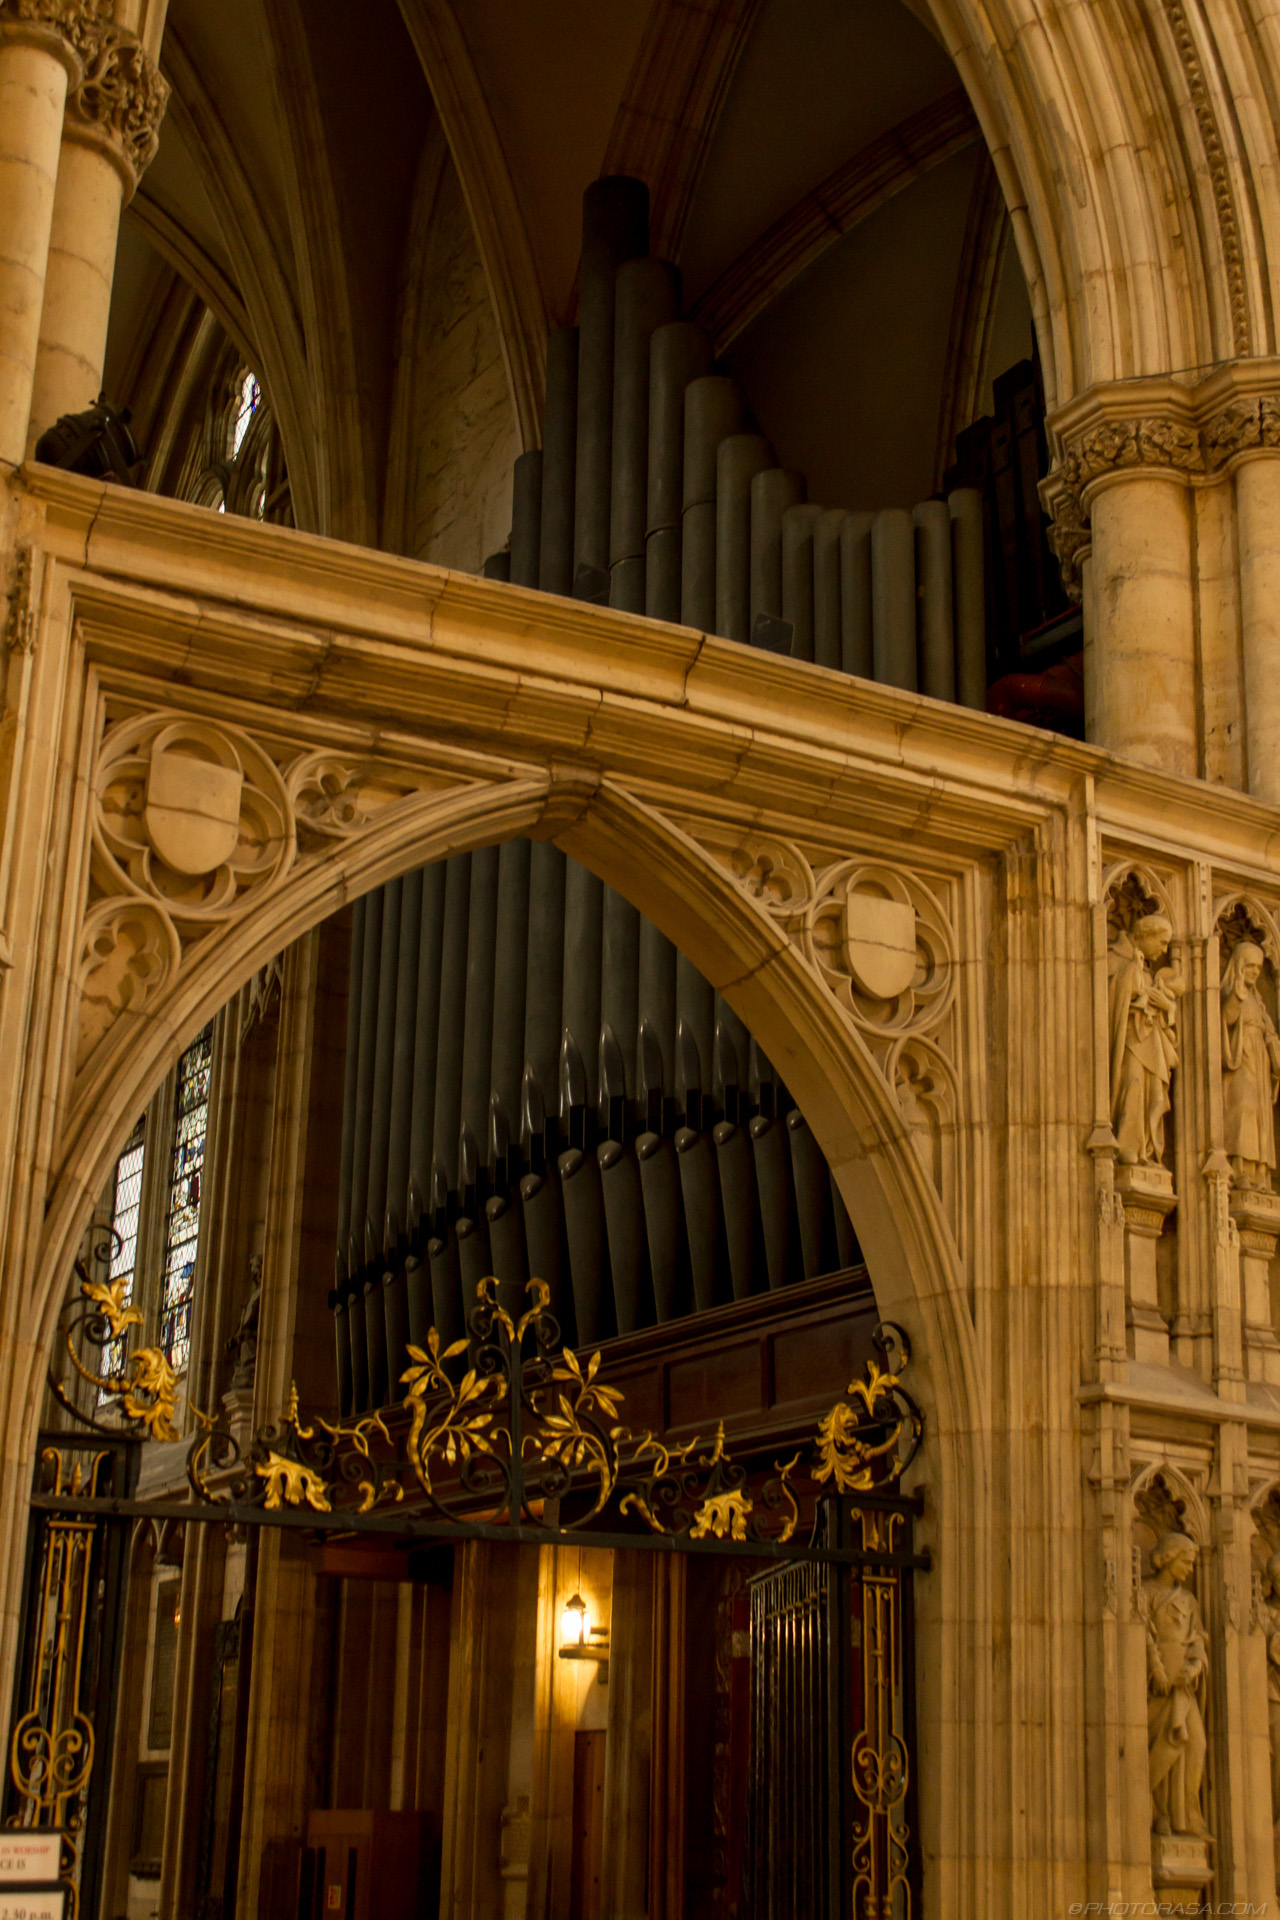 http://photorasa.com/places/yorkminster-cathedral/attachment/stone-archway-in-front-of-organ-pipes/